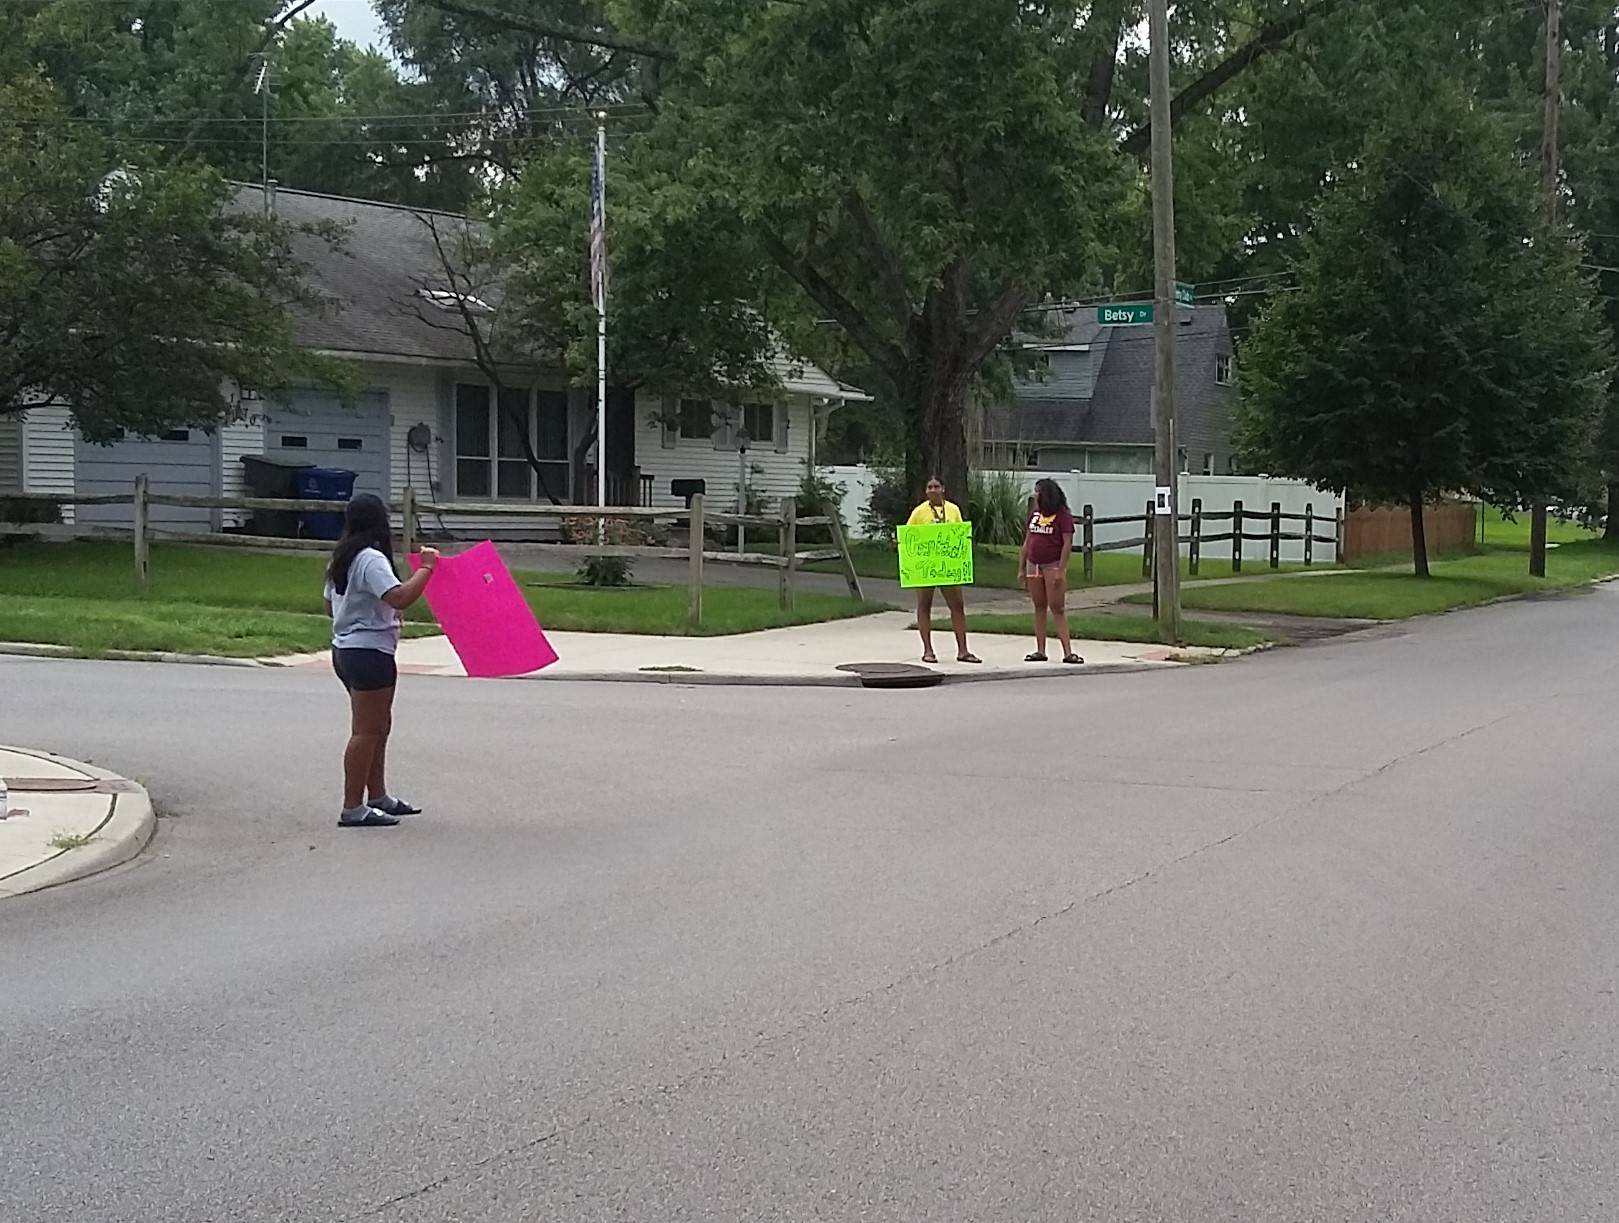 Students on sidewalk with car  wash signs